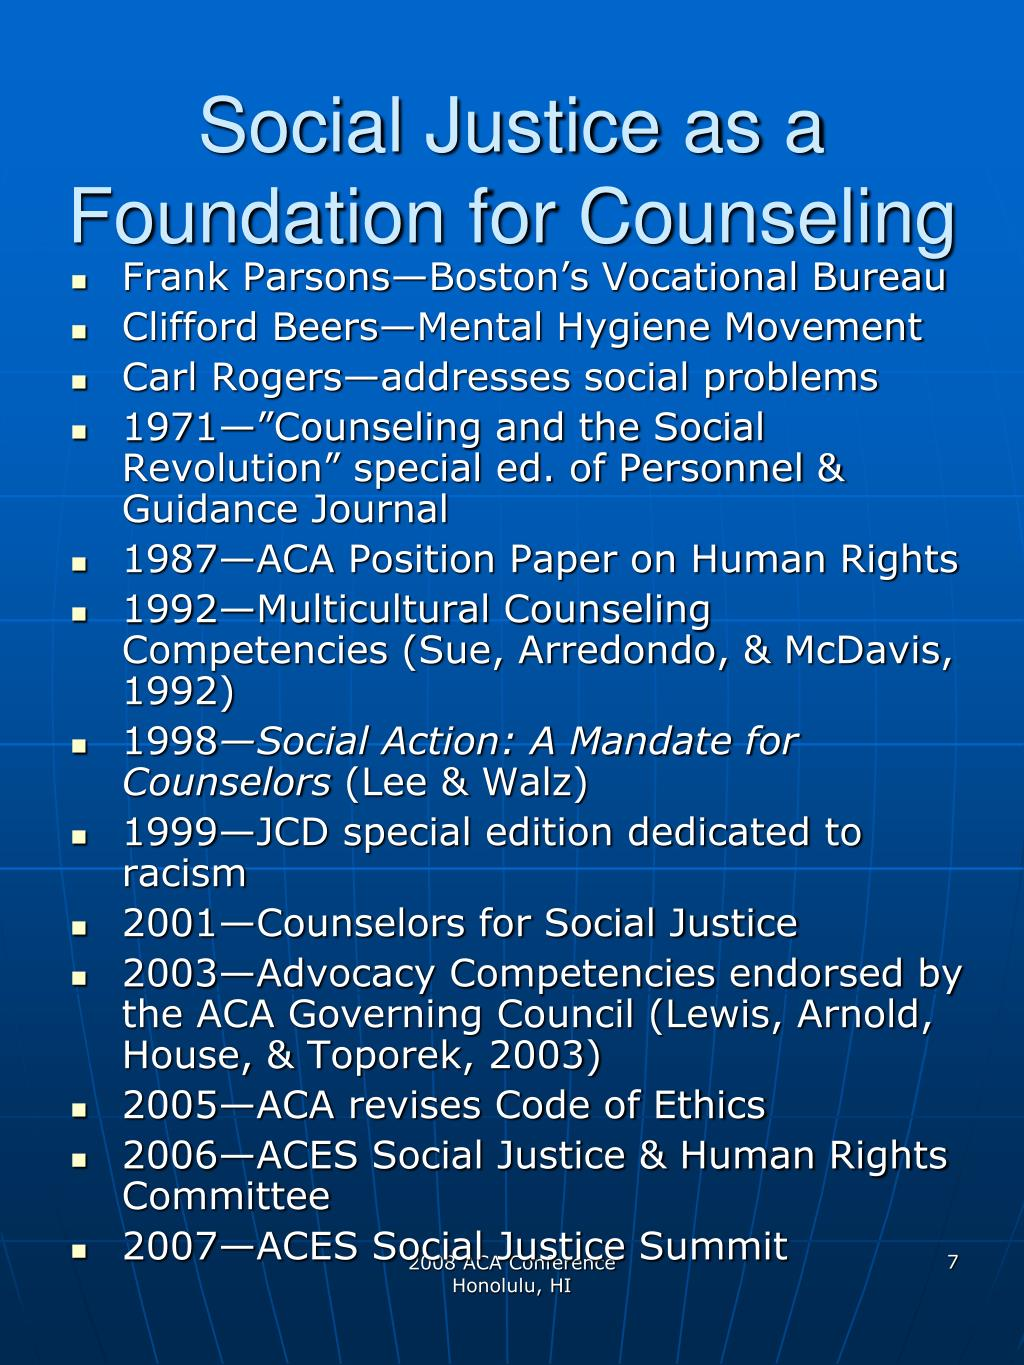 Social Justice as a Foundation for Counseling